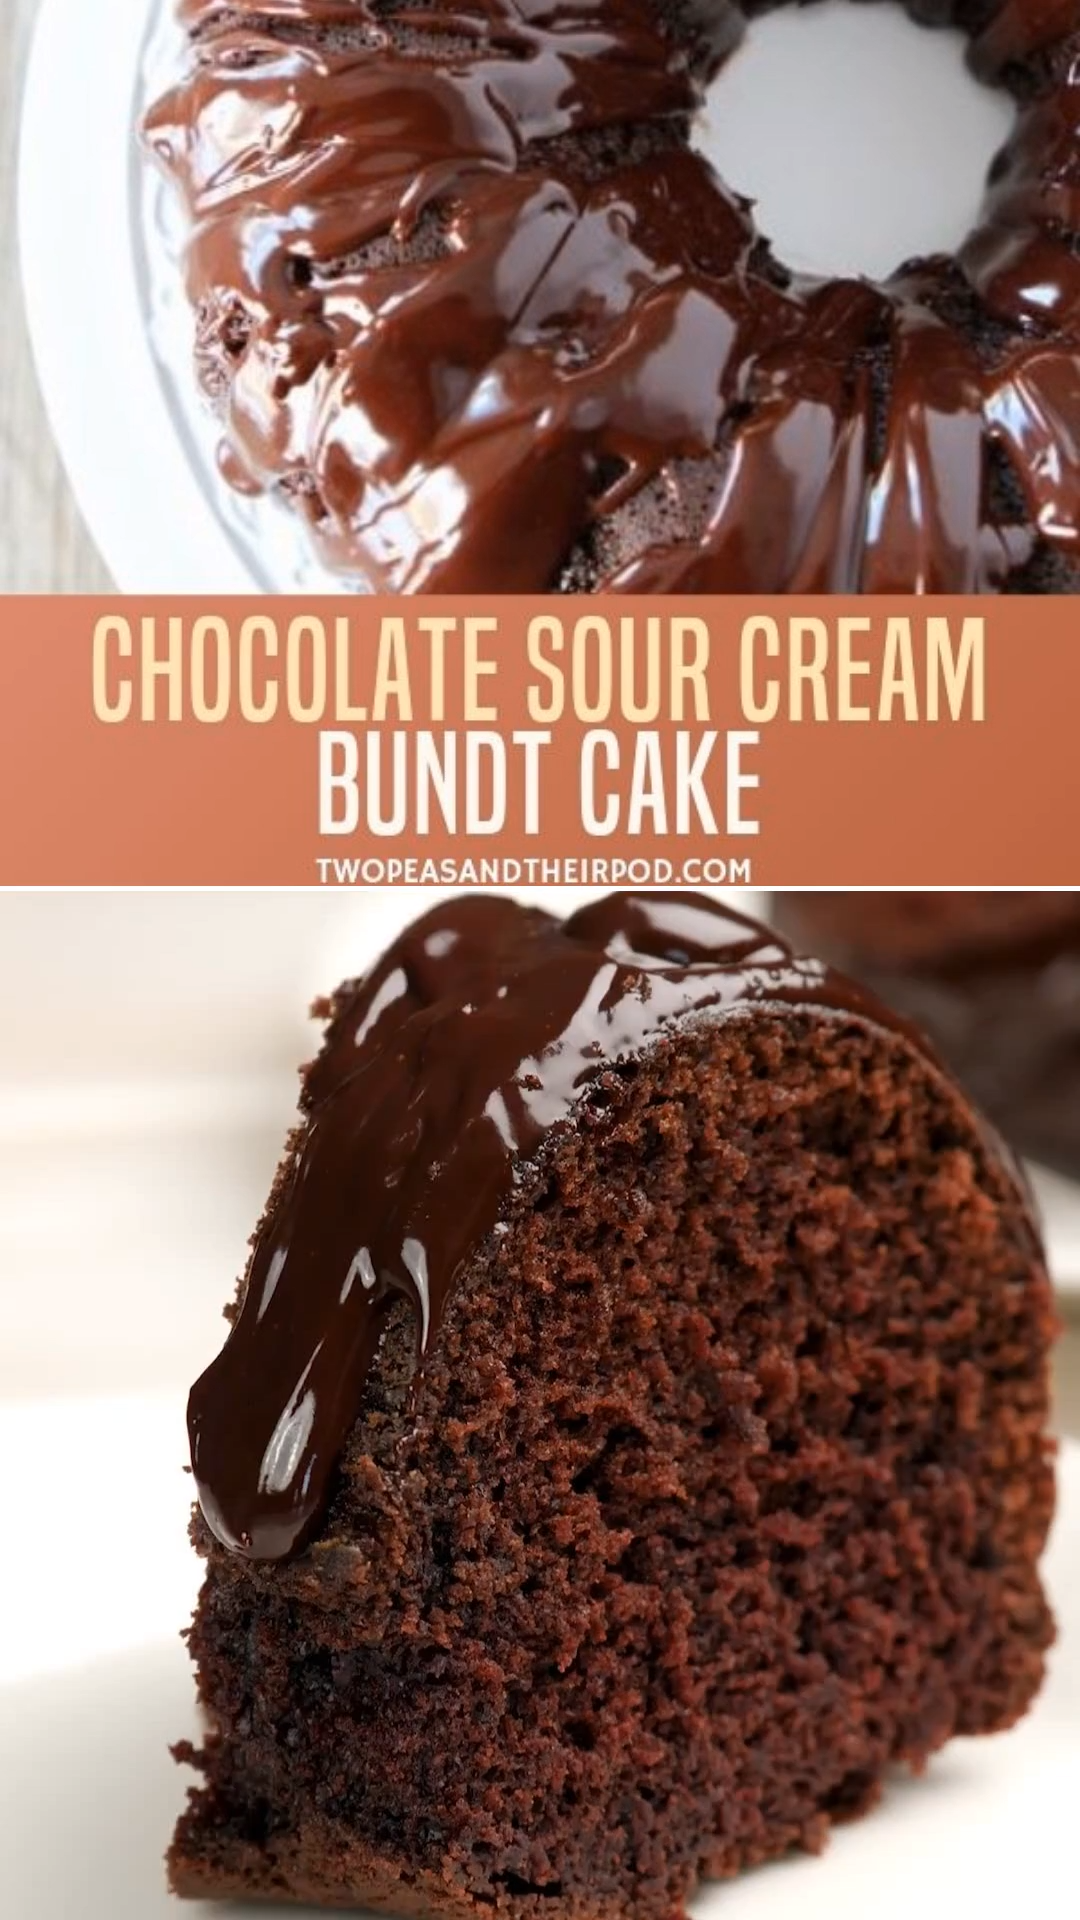 Chocolate Sour Cream Bundt Cake In 2020 Homemade Chocolate Cake Easy Cake Recipes Homemade Chocolate